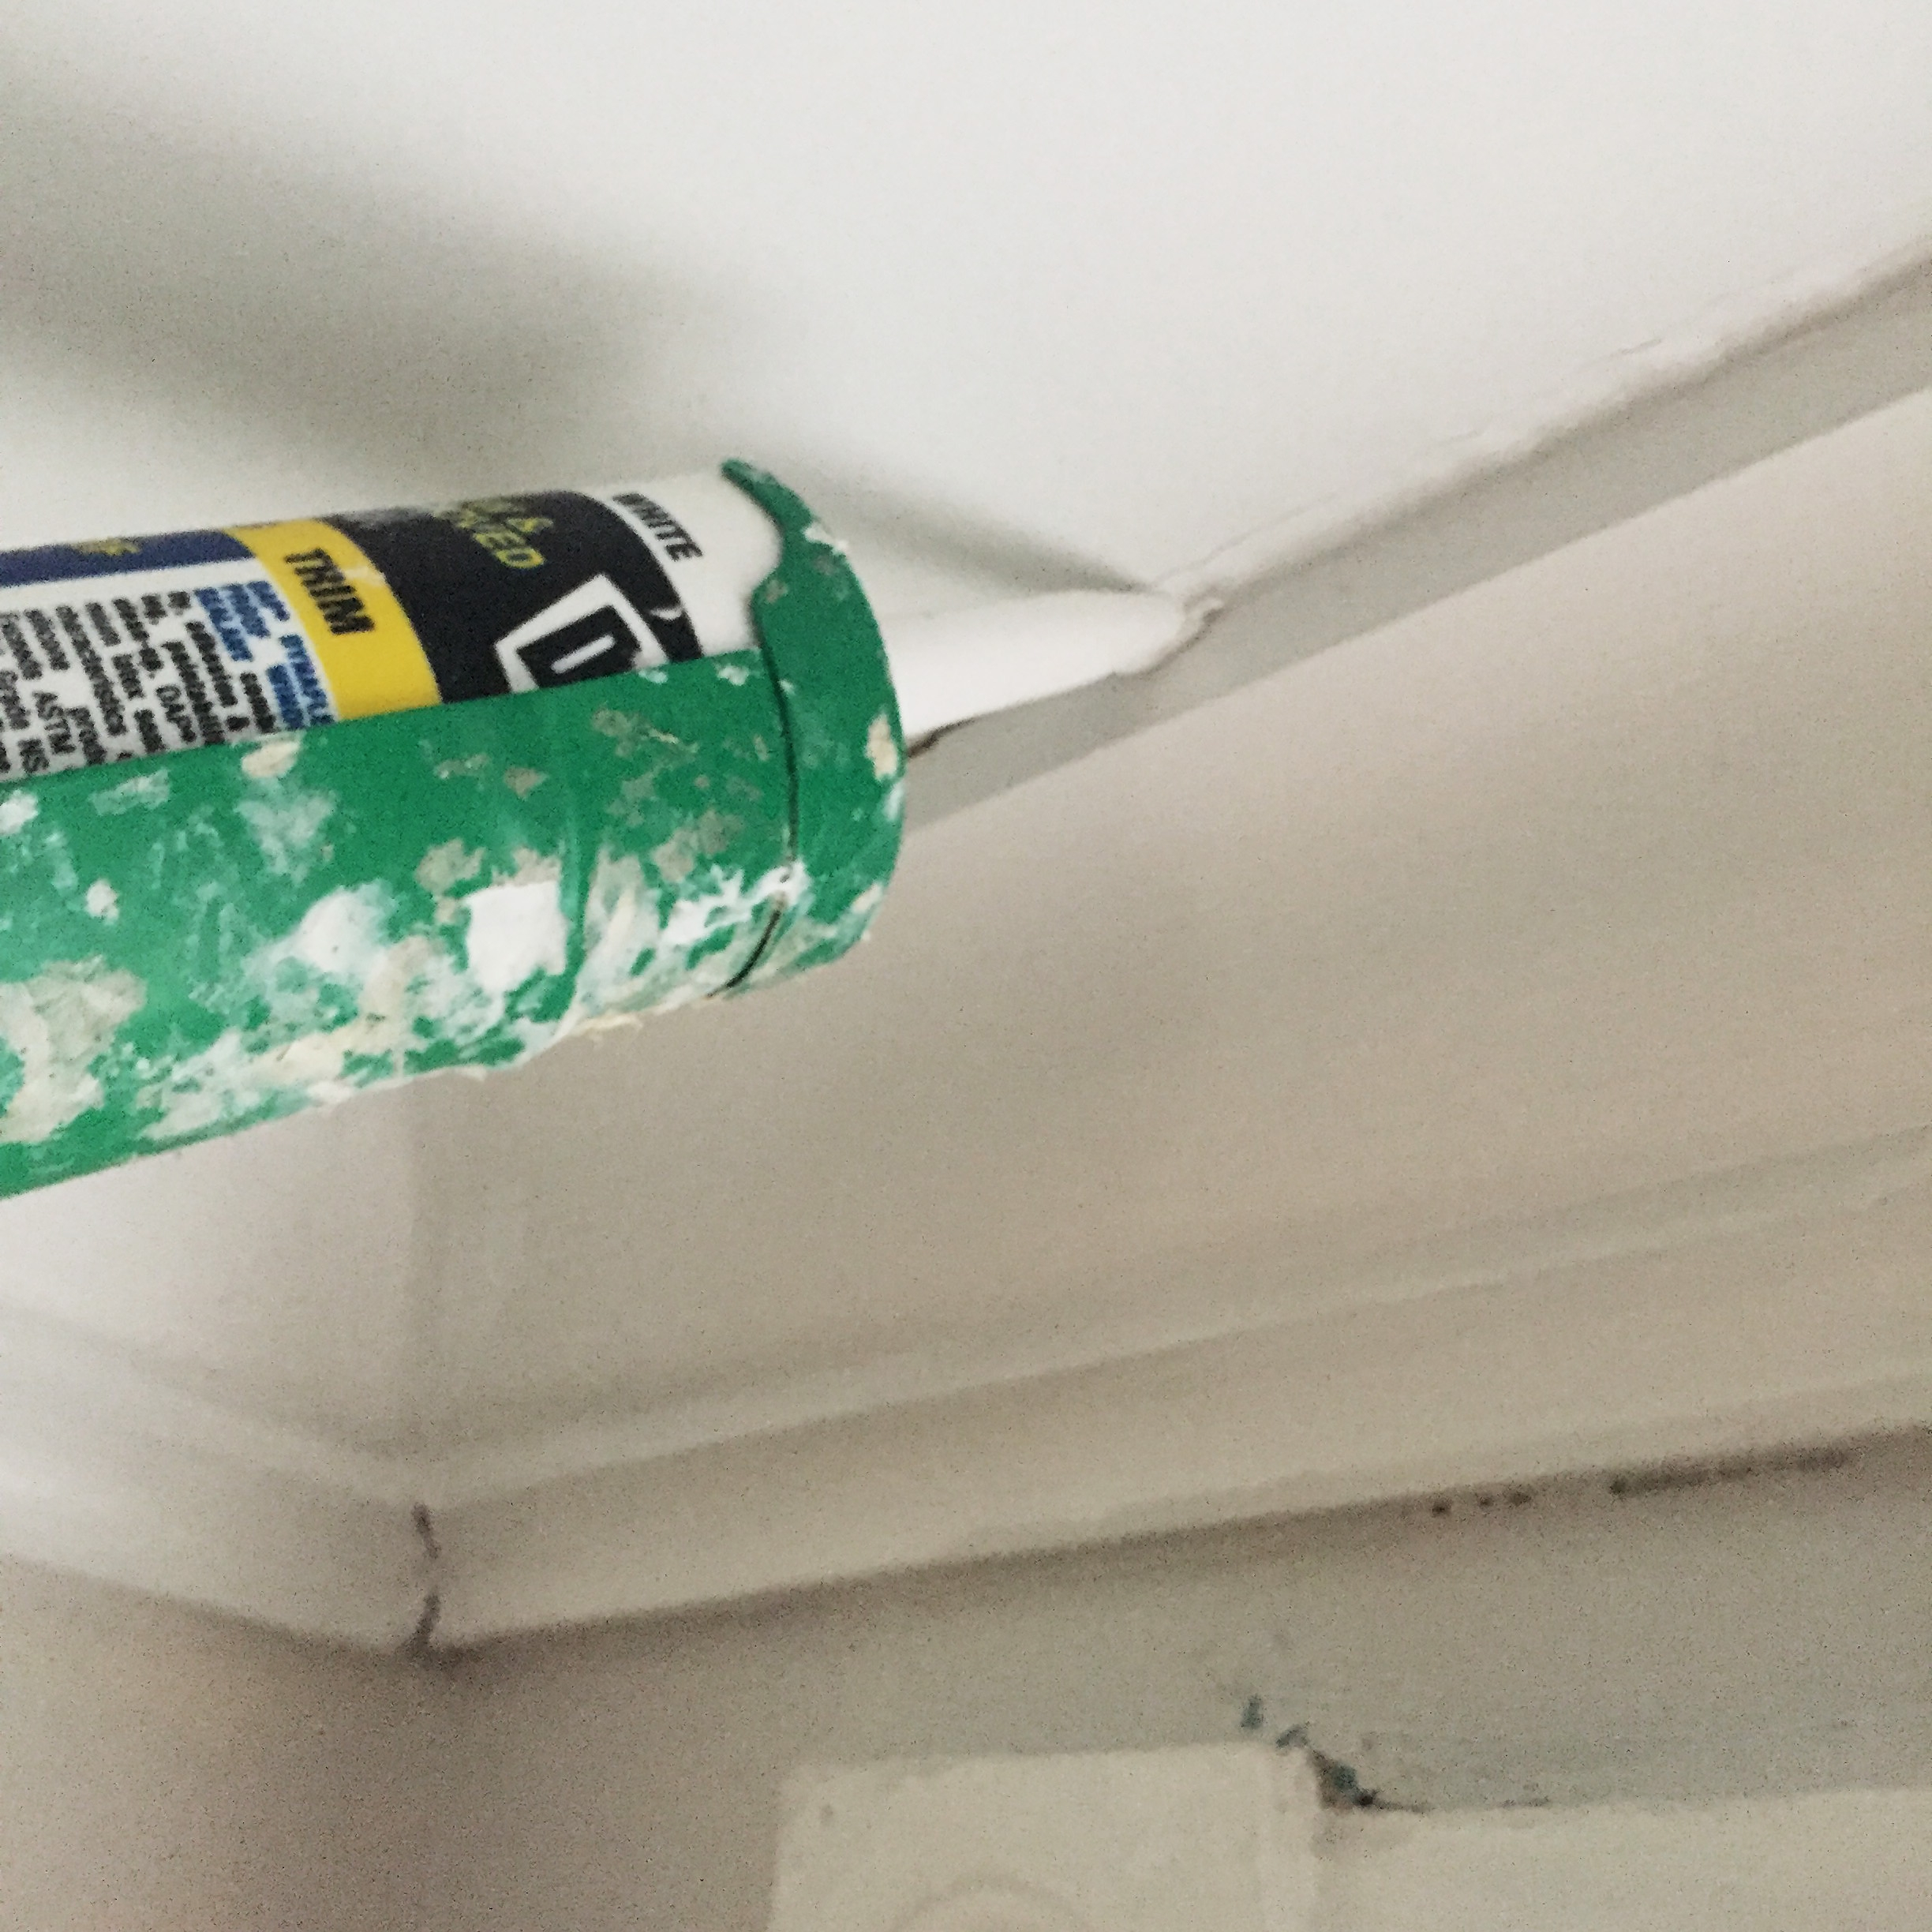 weekend projects: caulking tips | via:  chatham st. house